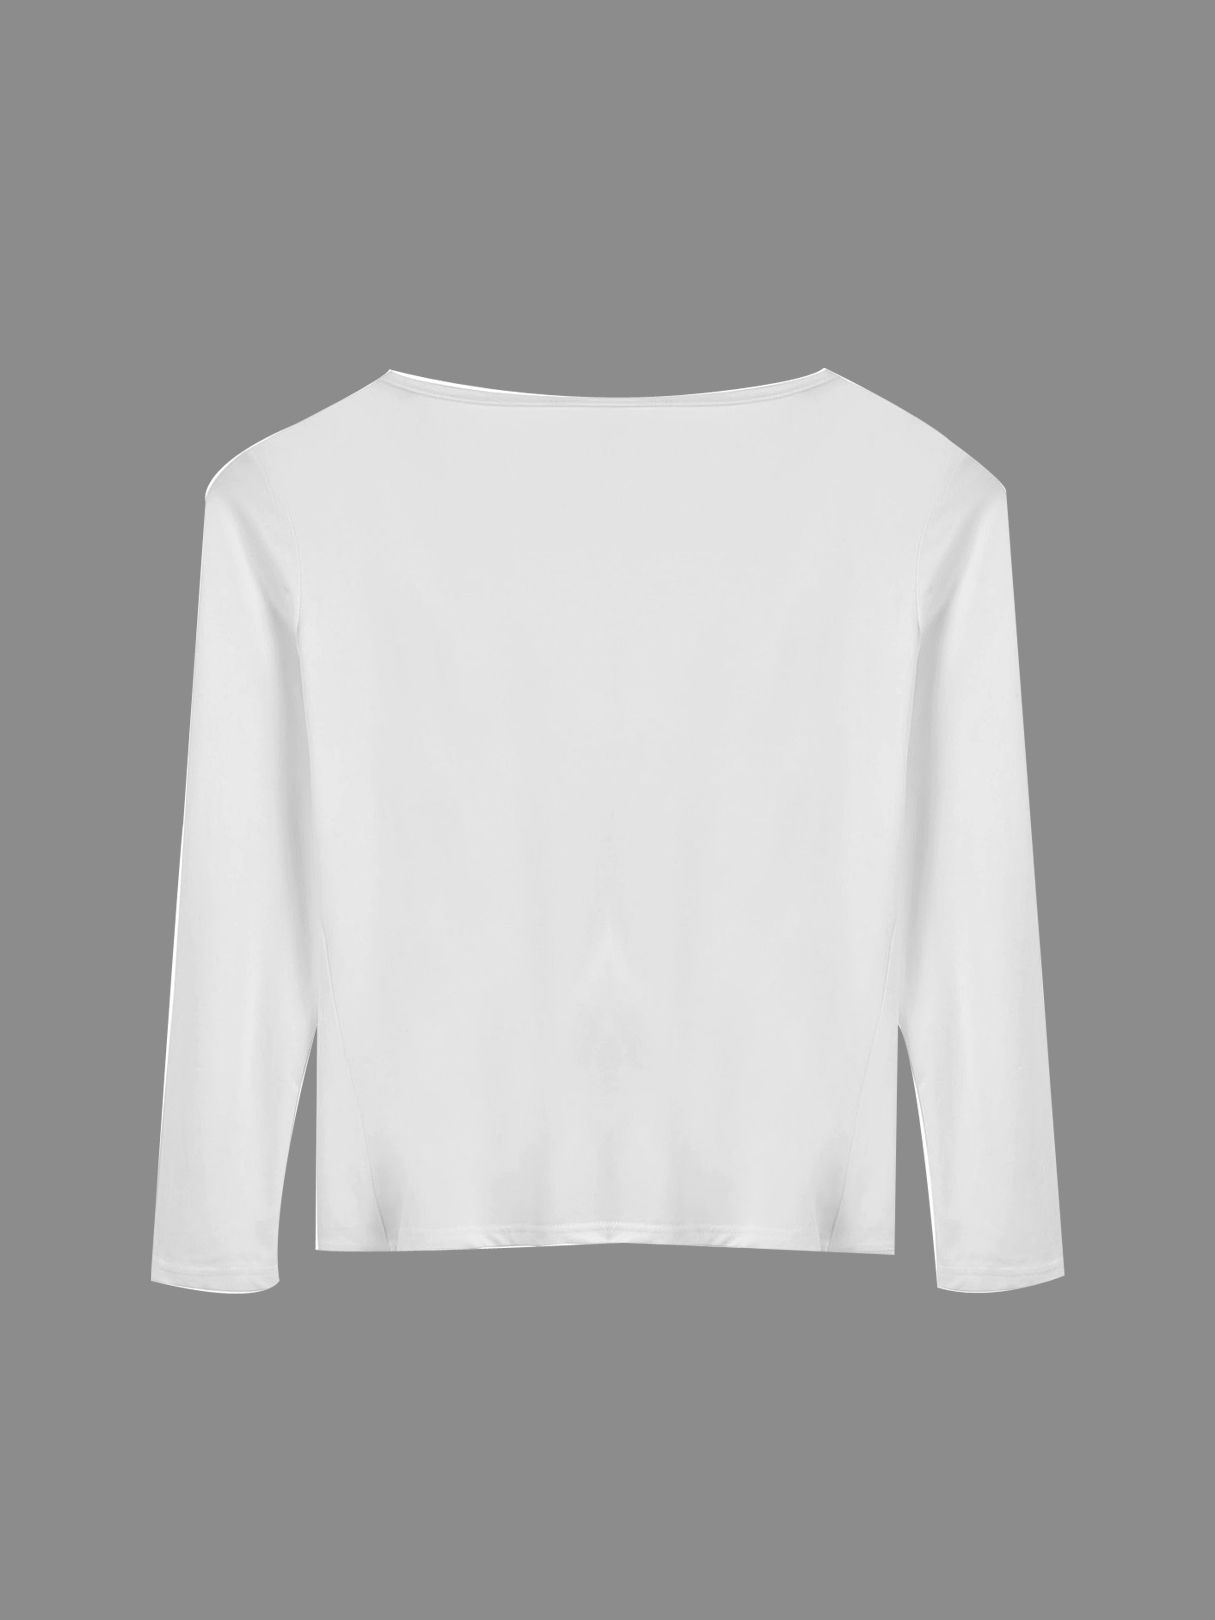 Long Sleeve Wrap Front Crop Top от Yoins.com INT